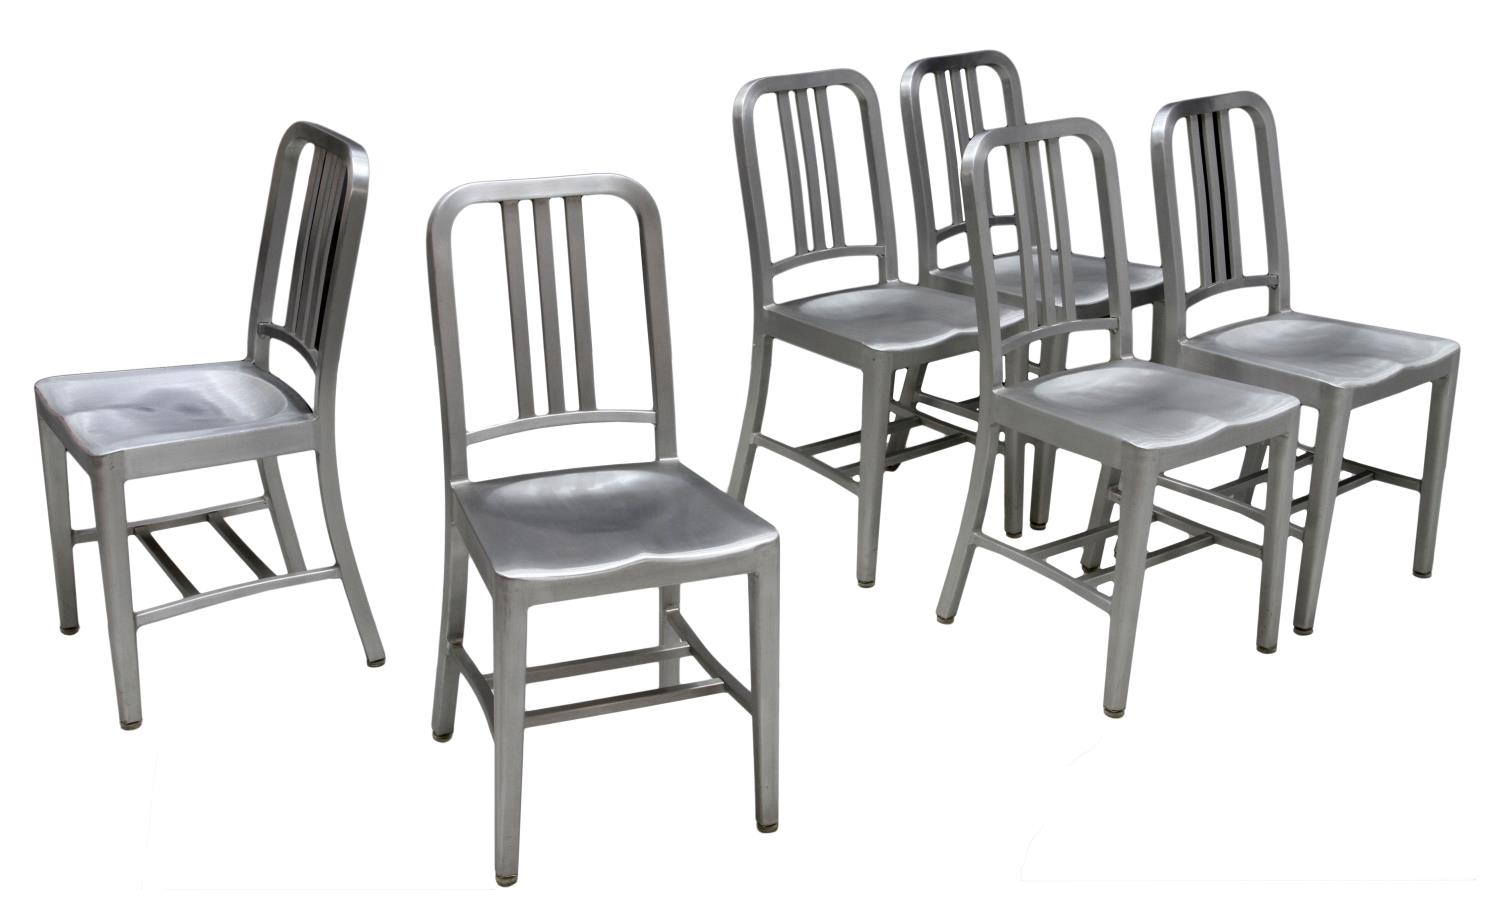 6 EMECO ALUMINUM NAVY CHAIRS MODEL 1006 Mid Summer Spectacular Estates A